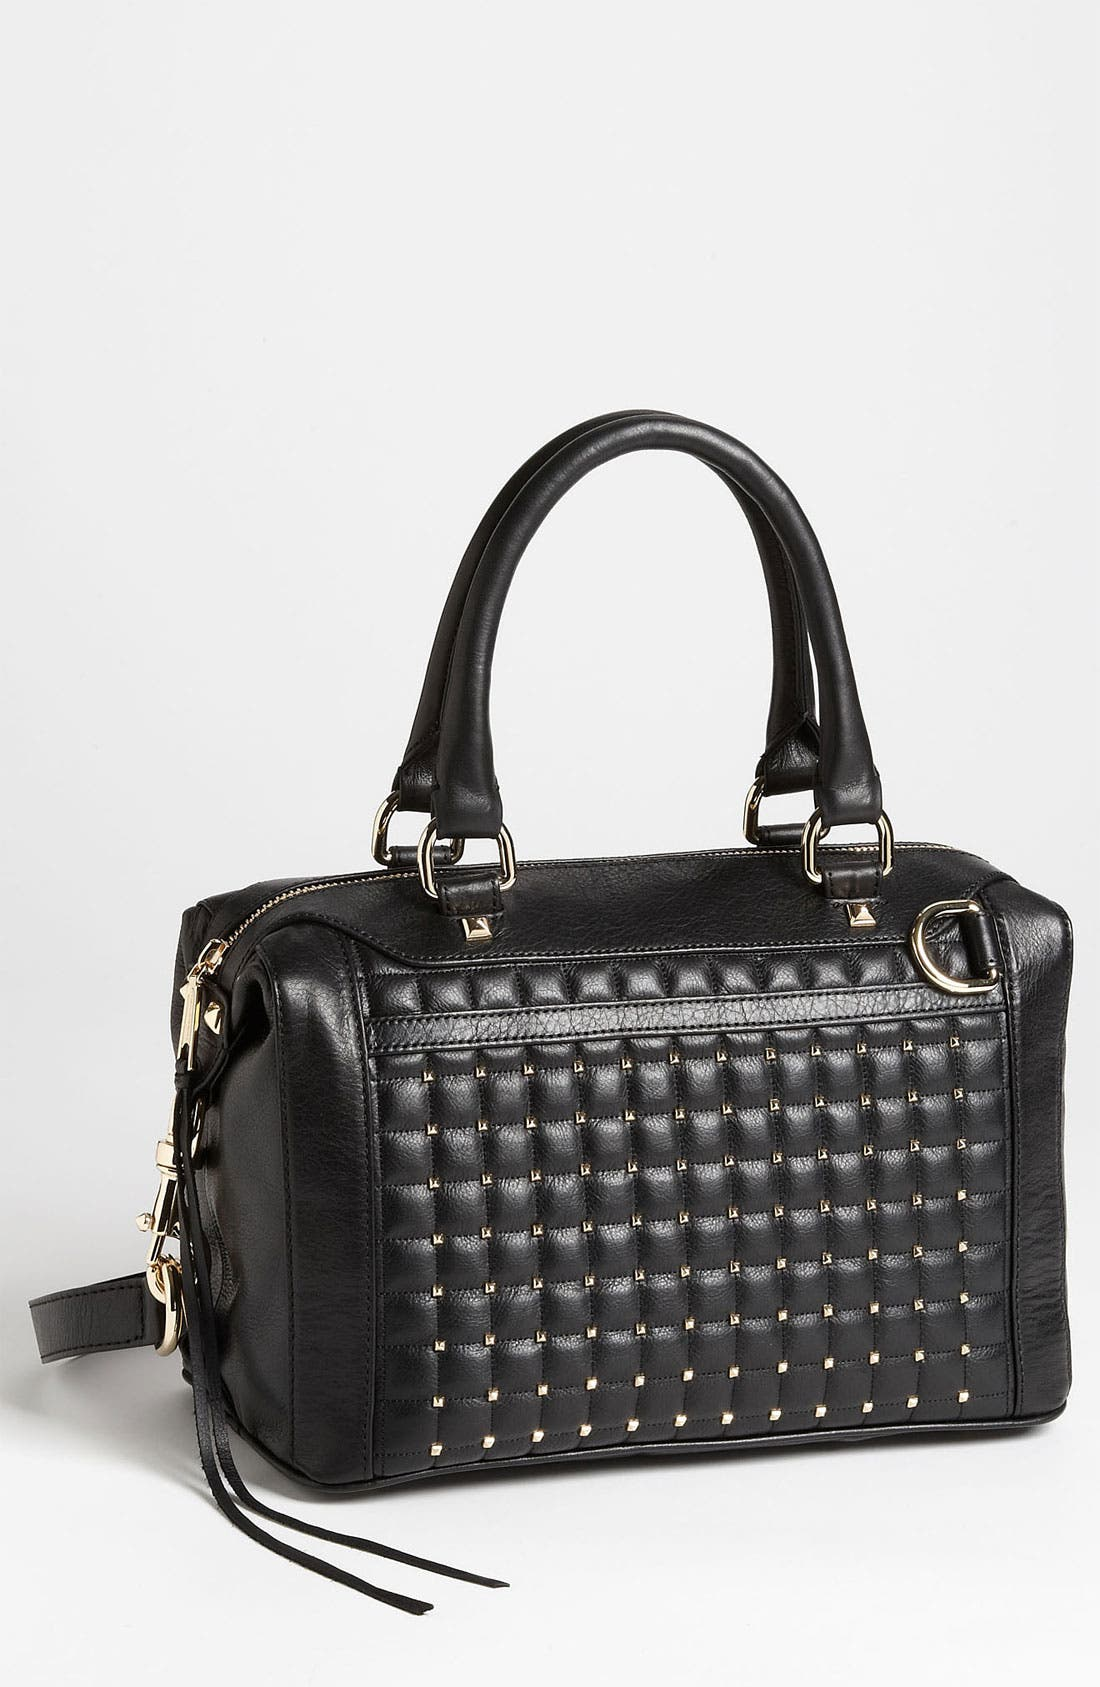 Main Image - Rebecca Minkoff 'MAB - Mini' Pyramid Stud Satchel